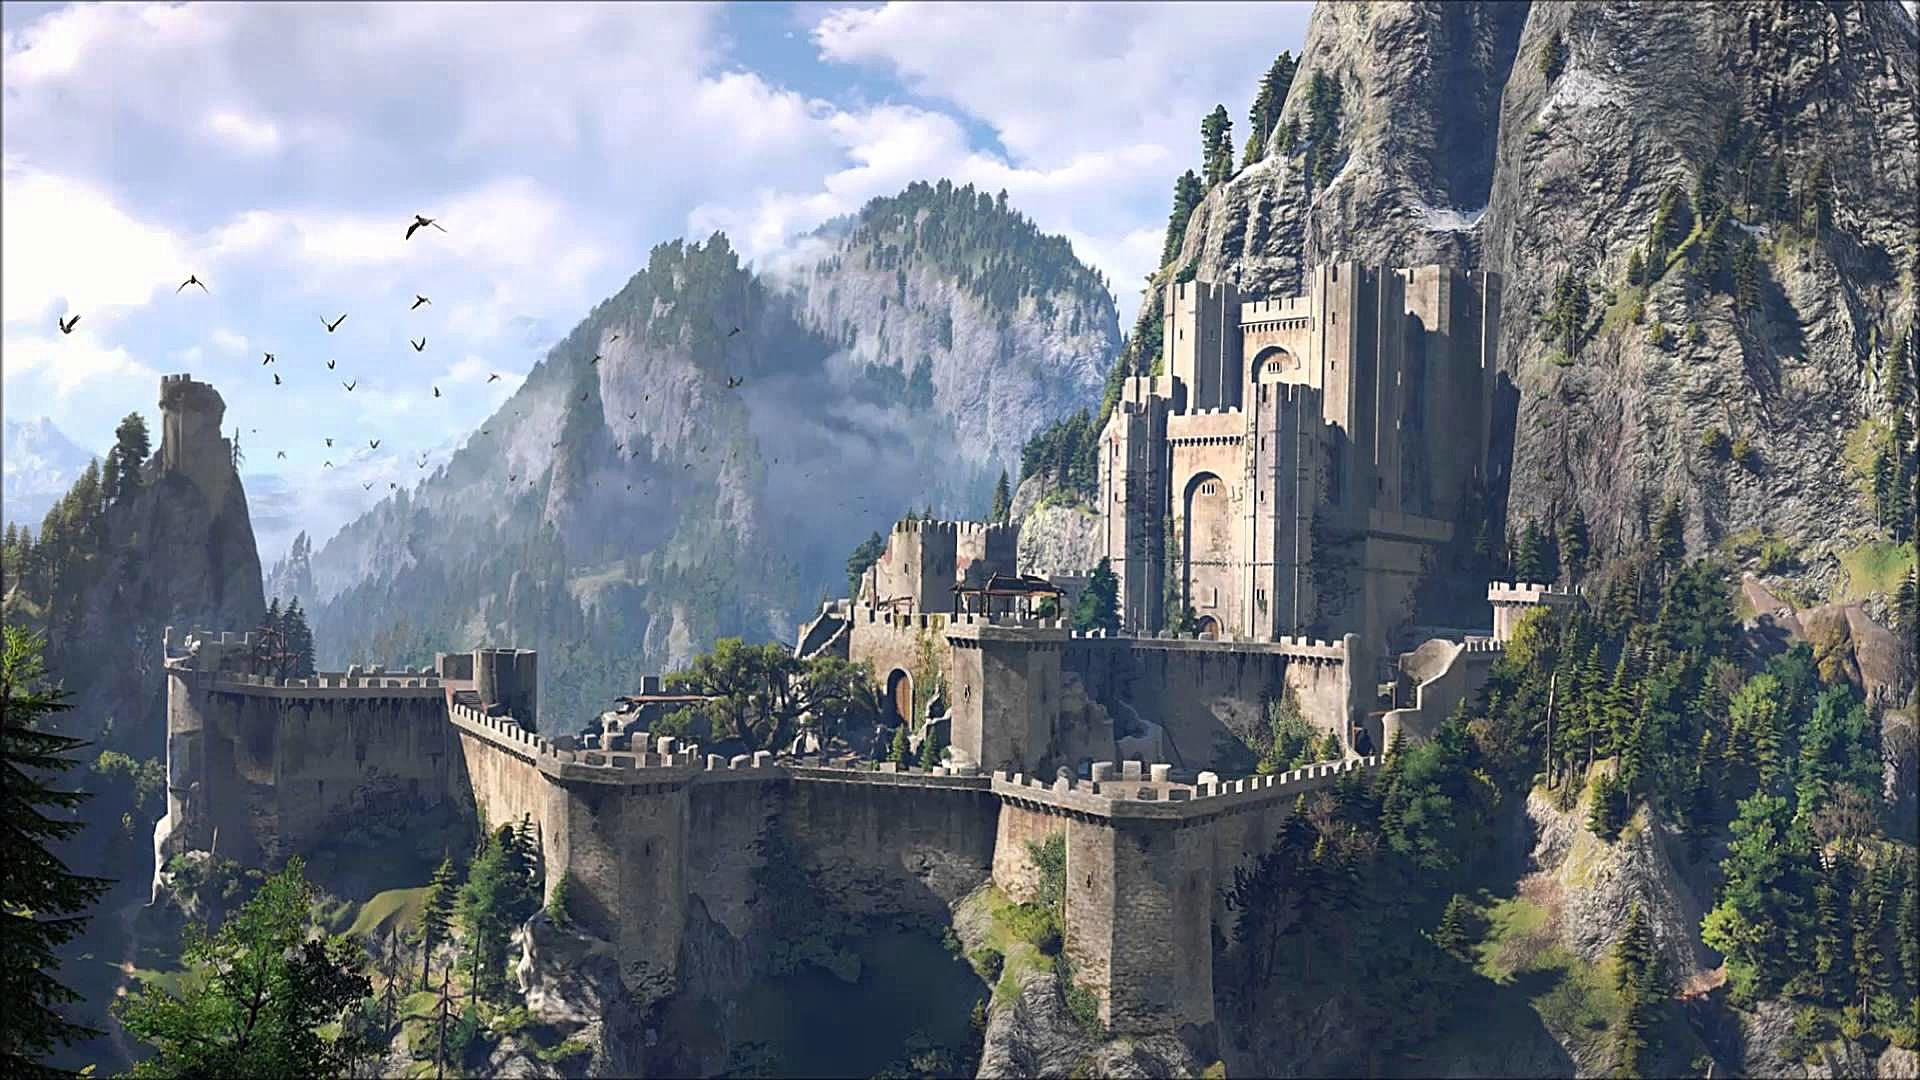 The witcher 3 battle of kaer morhen